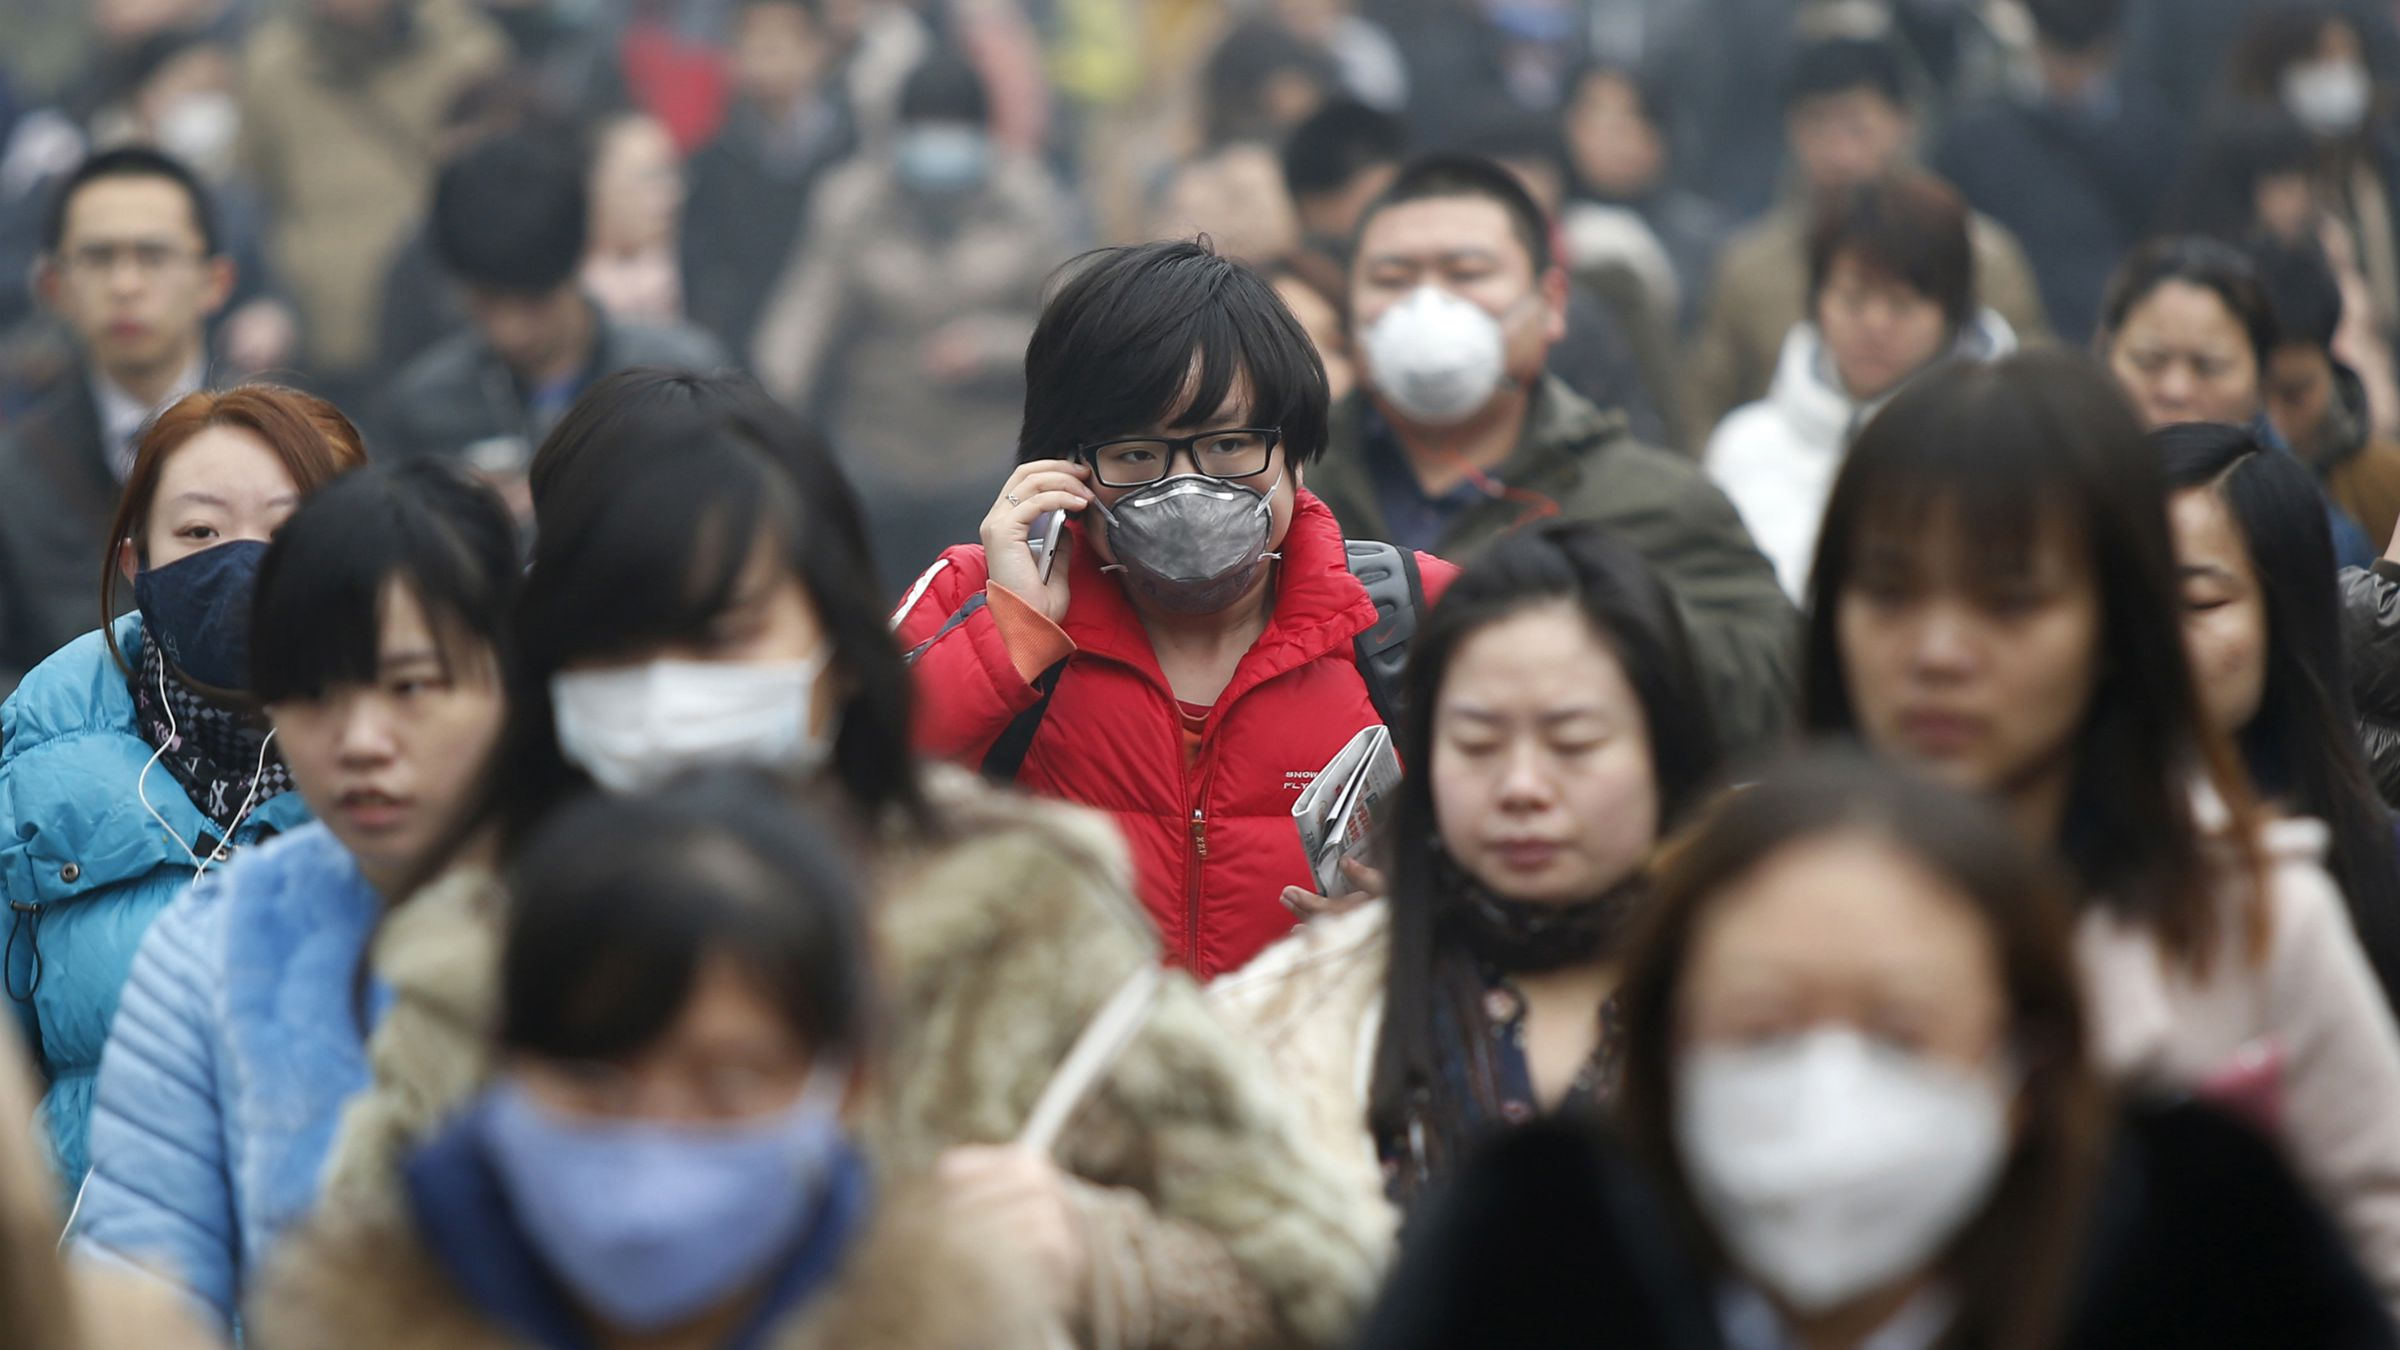 Commuters wearing masks make their way amid thick haze in the morning in Beijing February 26, 2014. China's north is suffering a pollution crisis, with the capital Beijing itself shrouded in acrid smog. Authorities have introduced anti-pollution policies and often pledged to clean up the environment but the problem has not eased. REUTERS/Kim Kyung-Hoon ibm green horizon beijing government big data